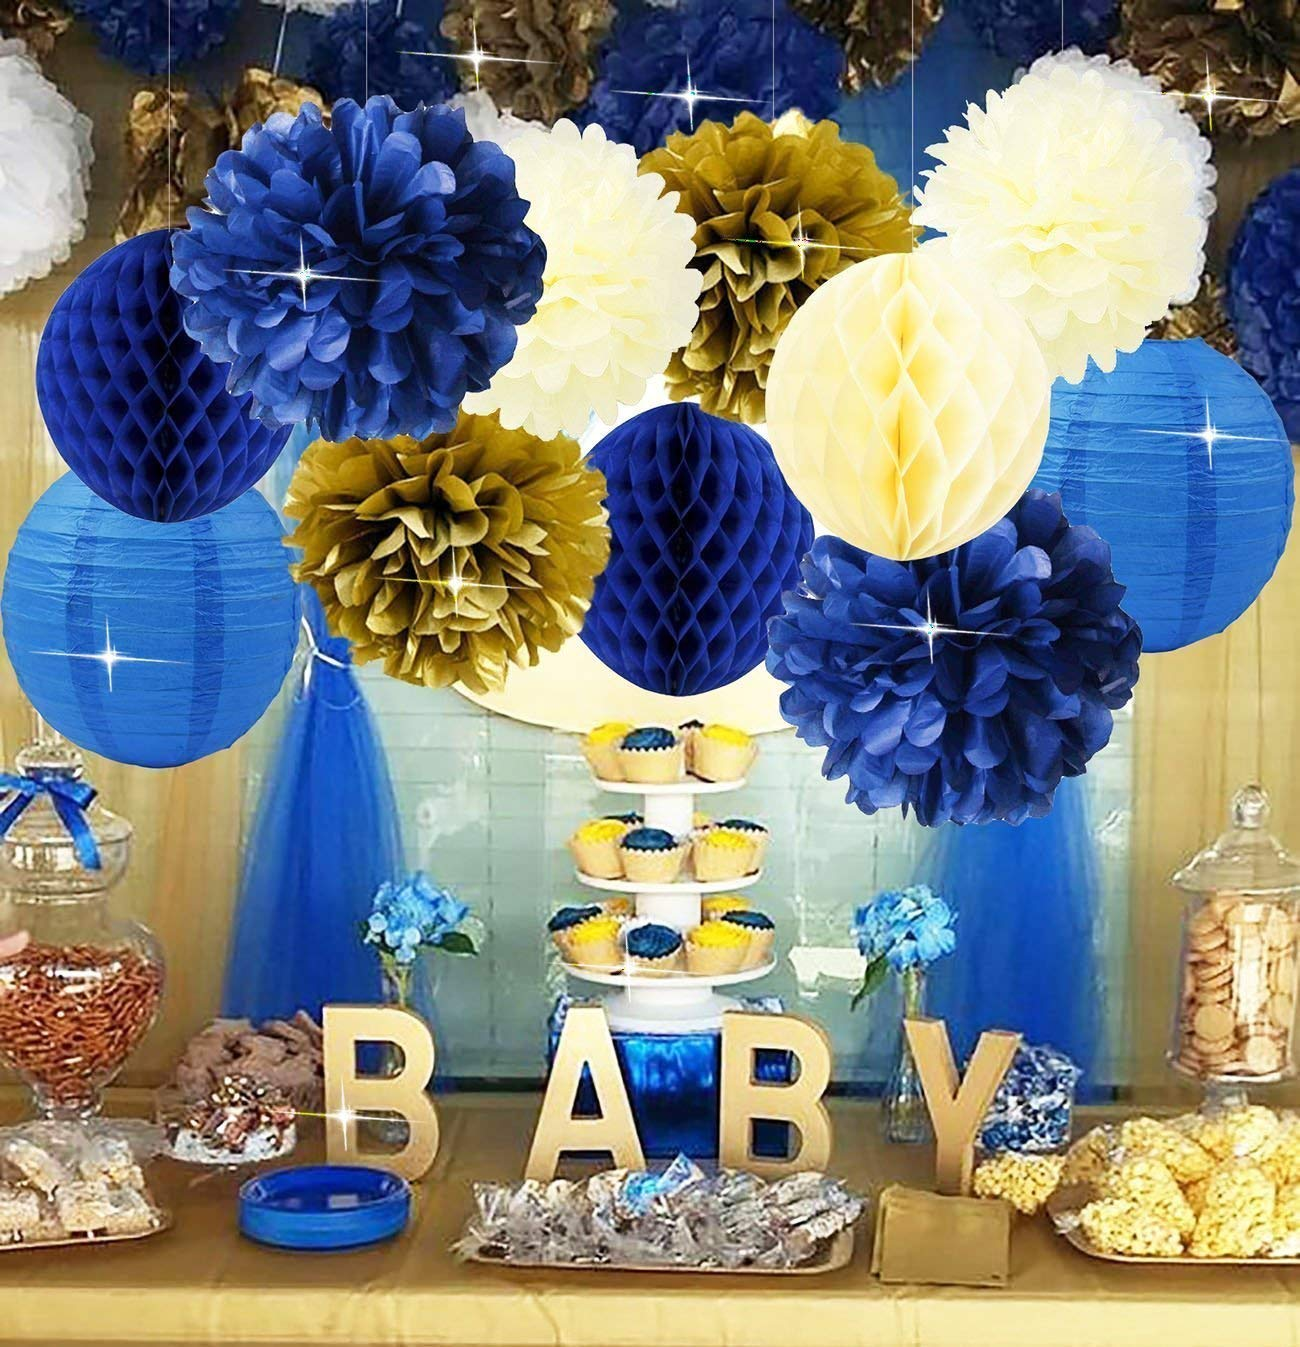 Furuix Royal Prince Baby Shower Decorations Navy Cream Gold Bridal Shower  Decorations Tissue Pom Pom Flower Navy Honeycomb Balls for 1st Birthday Boy  Prince ...